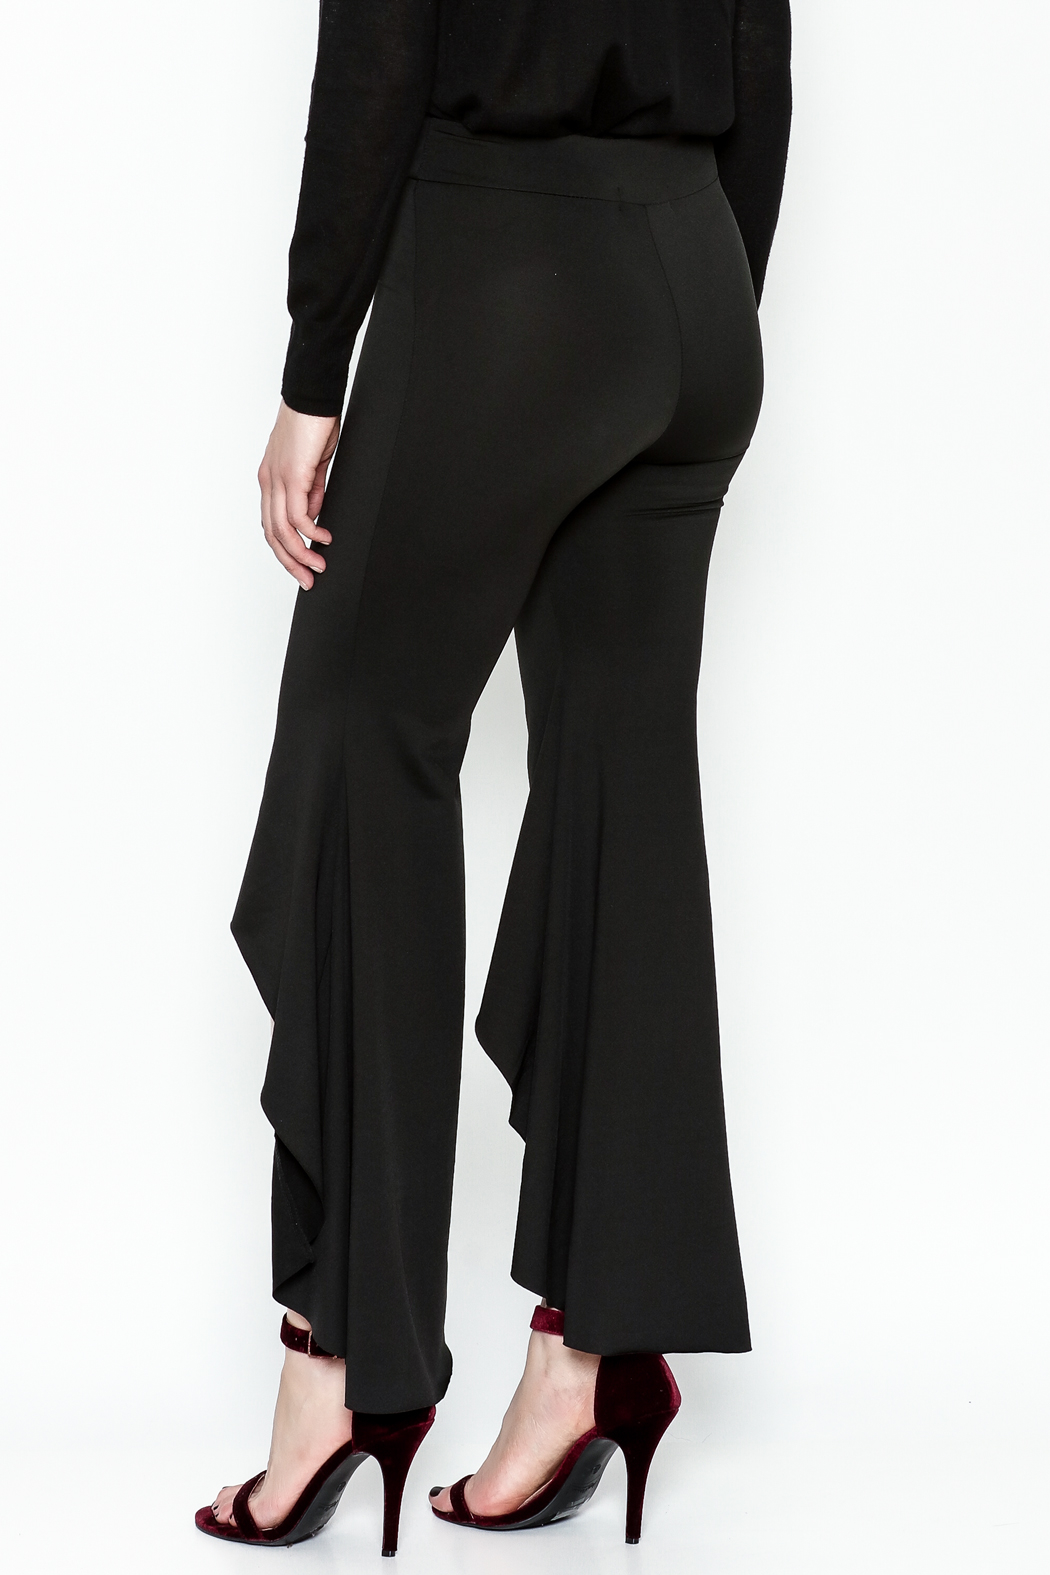 LIFTED Boutique Black High Low Pants - Back Cropped Image